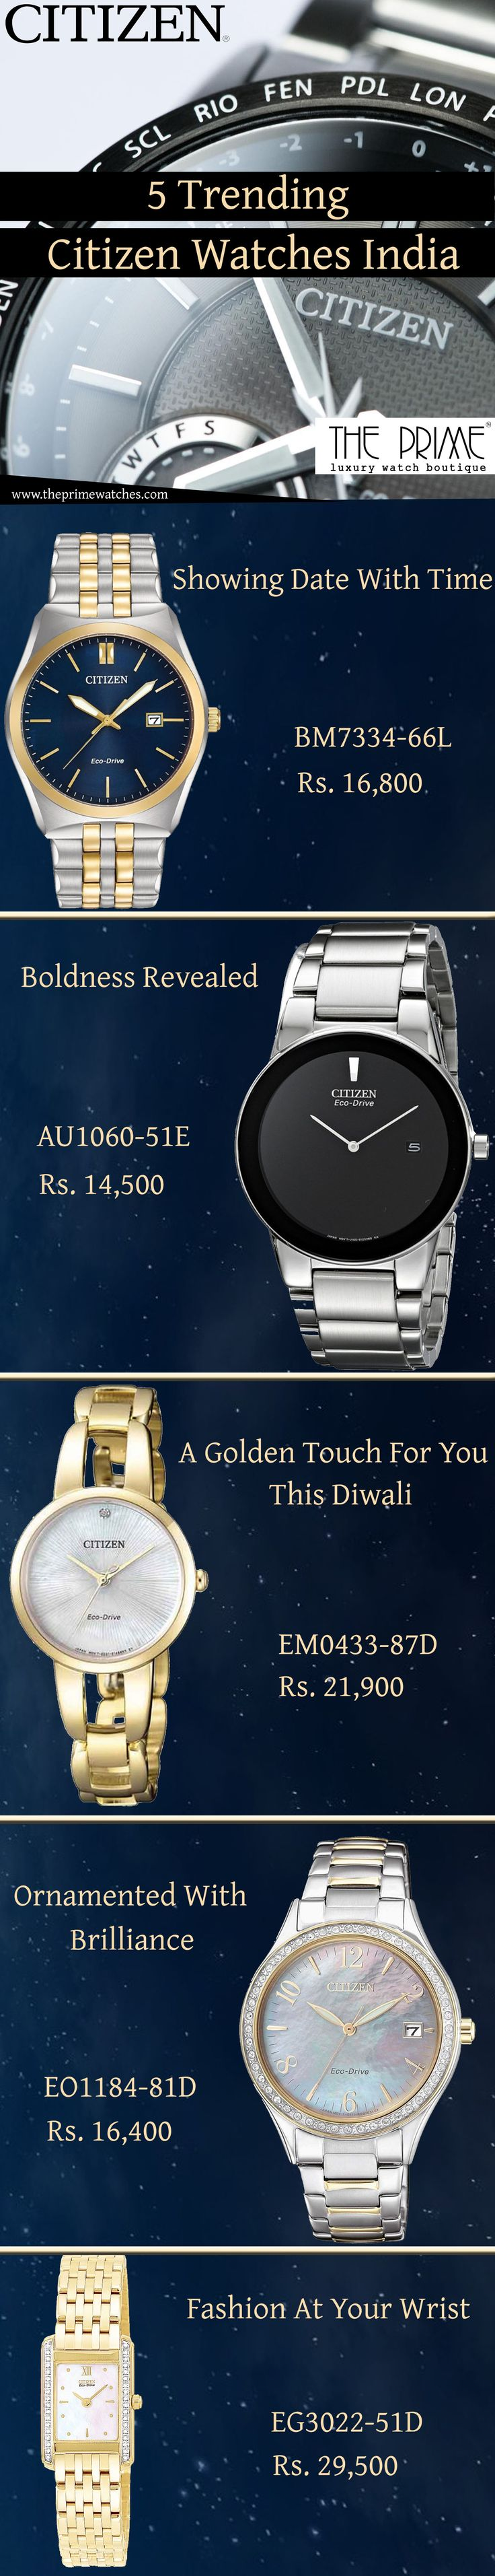 Now is the time to gear up for Diwali, so the Indians are crazy to buy something that gives the most value of money. In this content, you will the Citizen watches that are most sought after in India. Citizen watches are searched by the Indian watch users because of their affordability and effectiveness. Below are some magnificent Citizen watches that are trending in India.